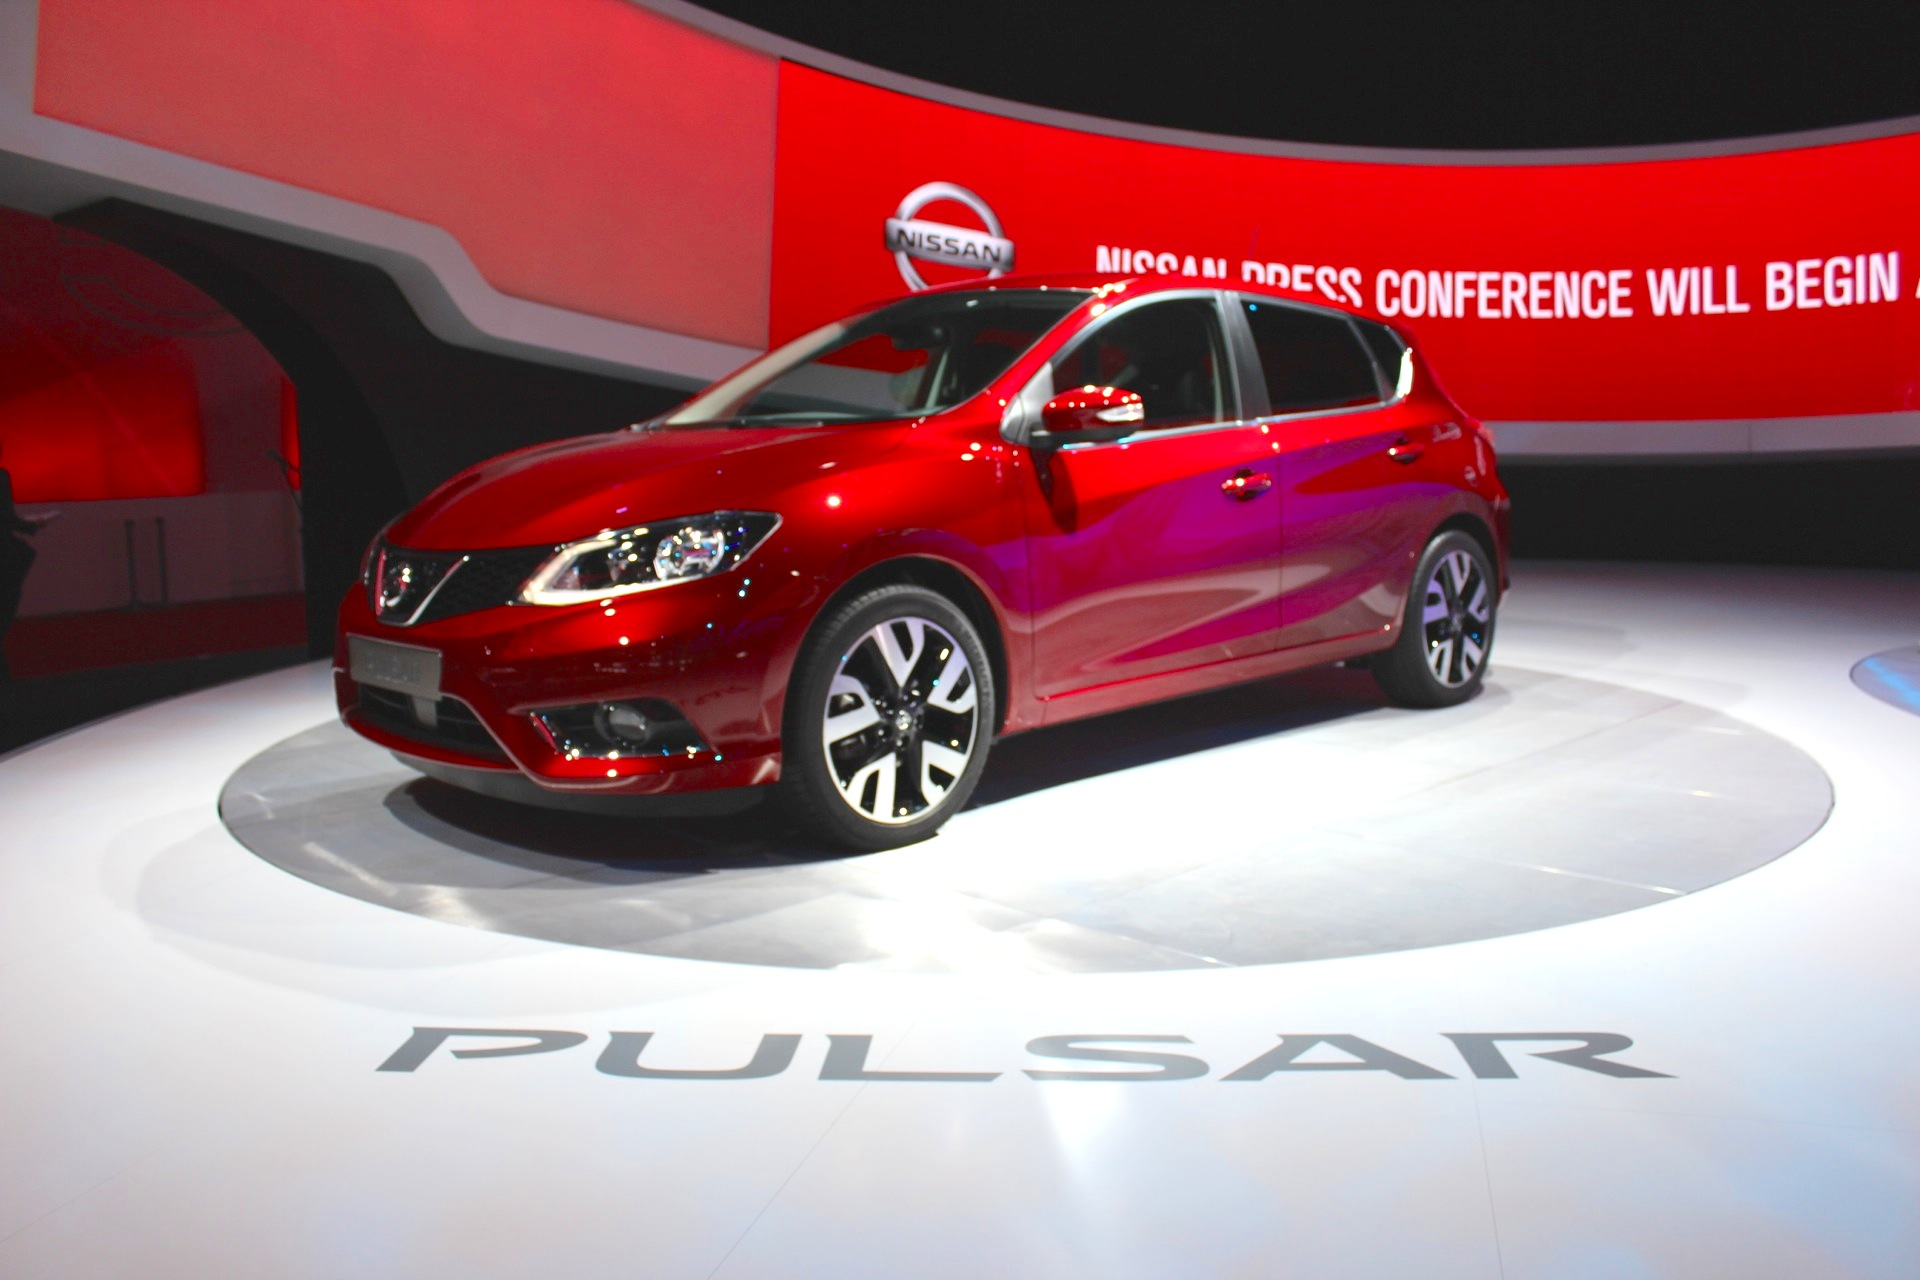 Nissan Sentra Altima Due To Get Dynamic Design Refresh Soon